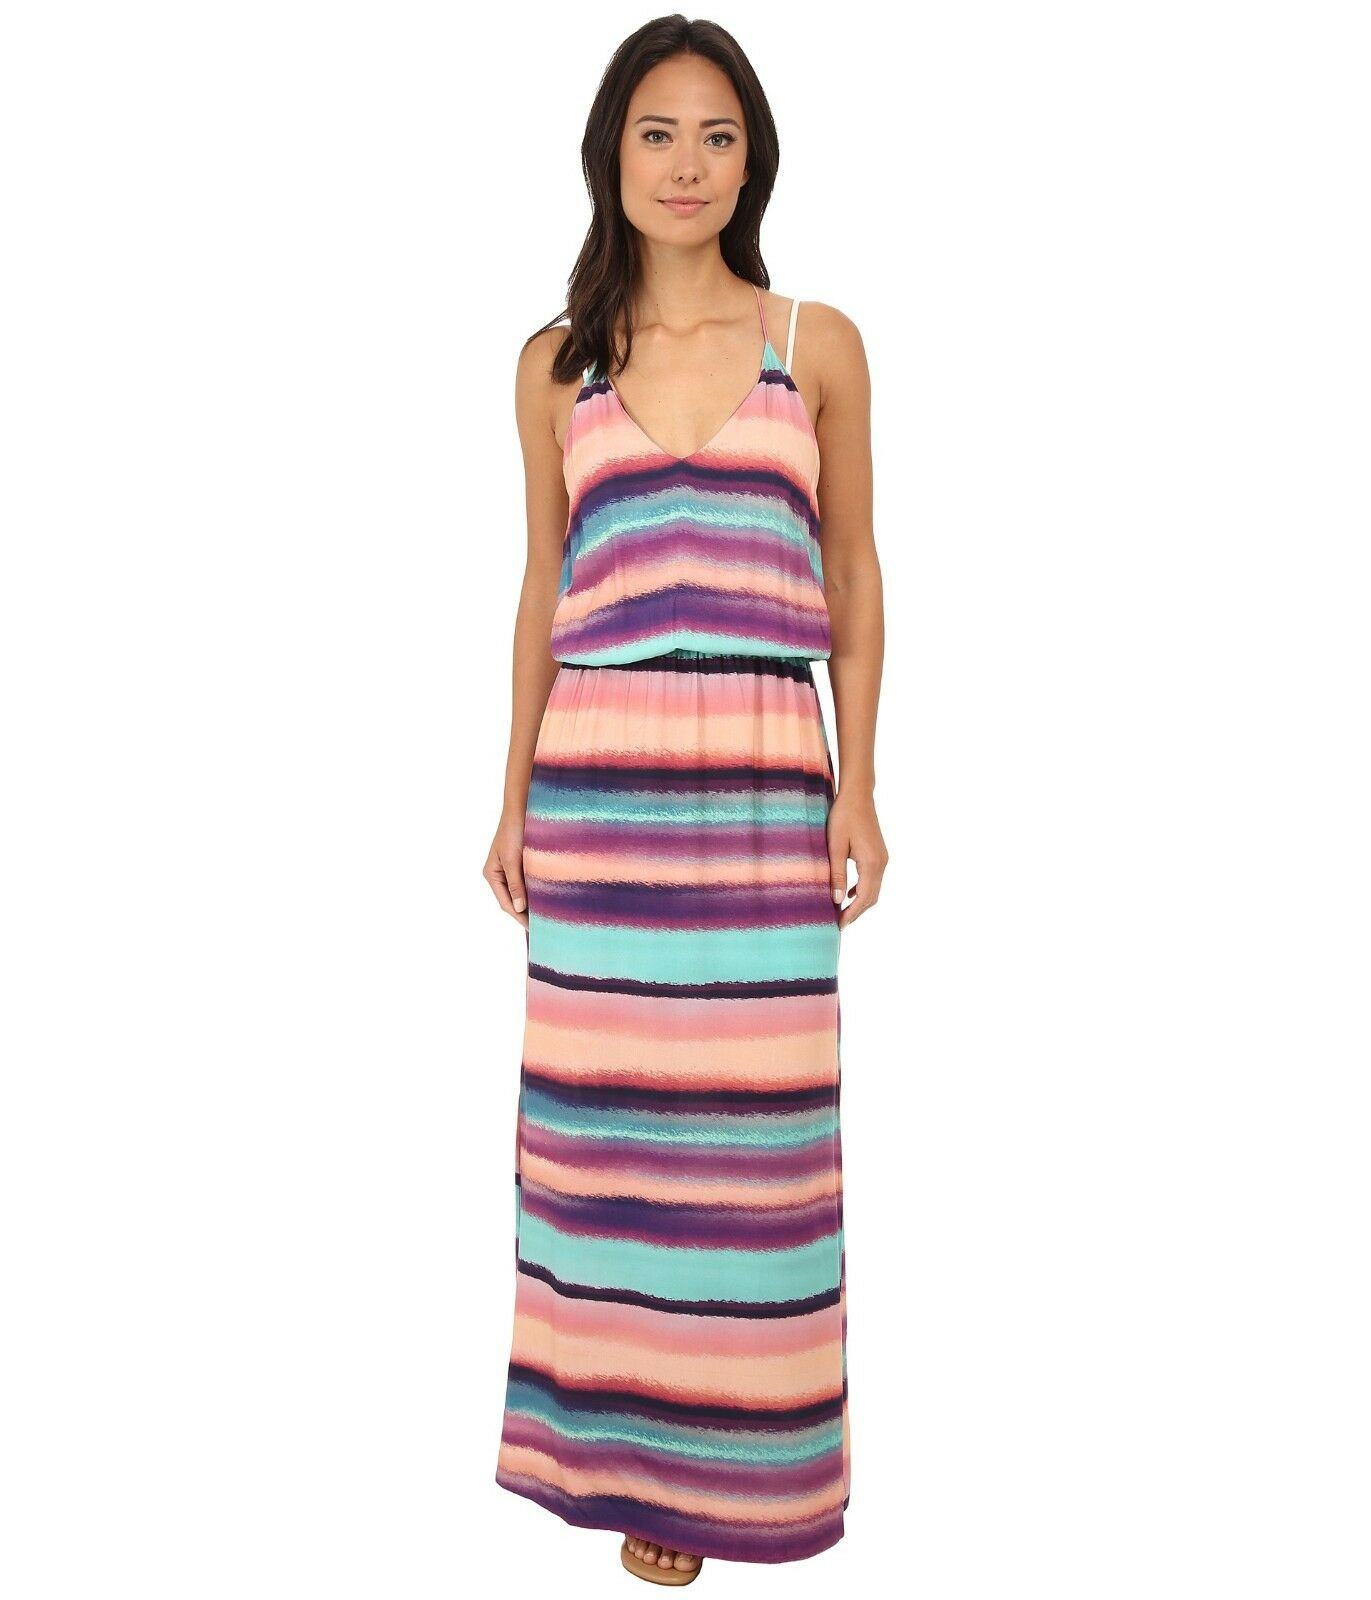 195 NEW - VIX Paula Hermanny Women's 'TAYSA' Reef MAXI DRESS - M